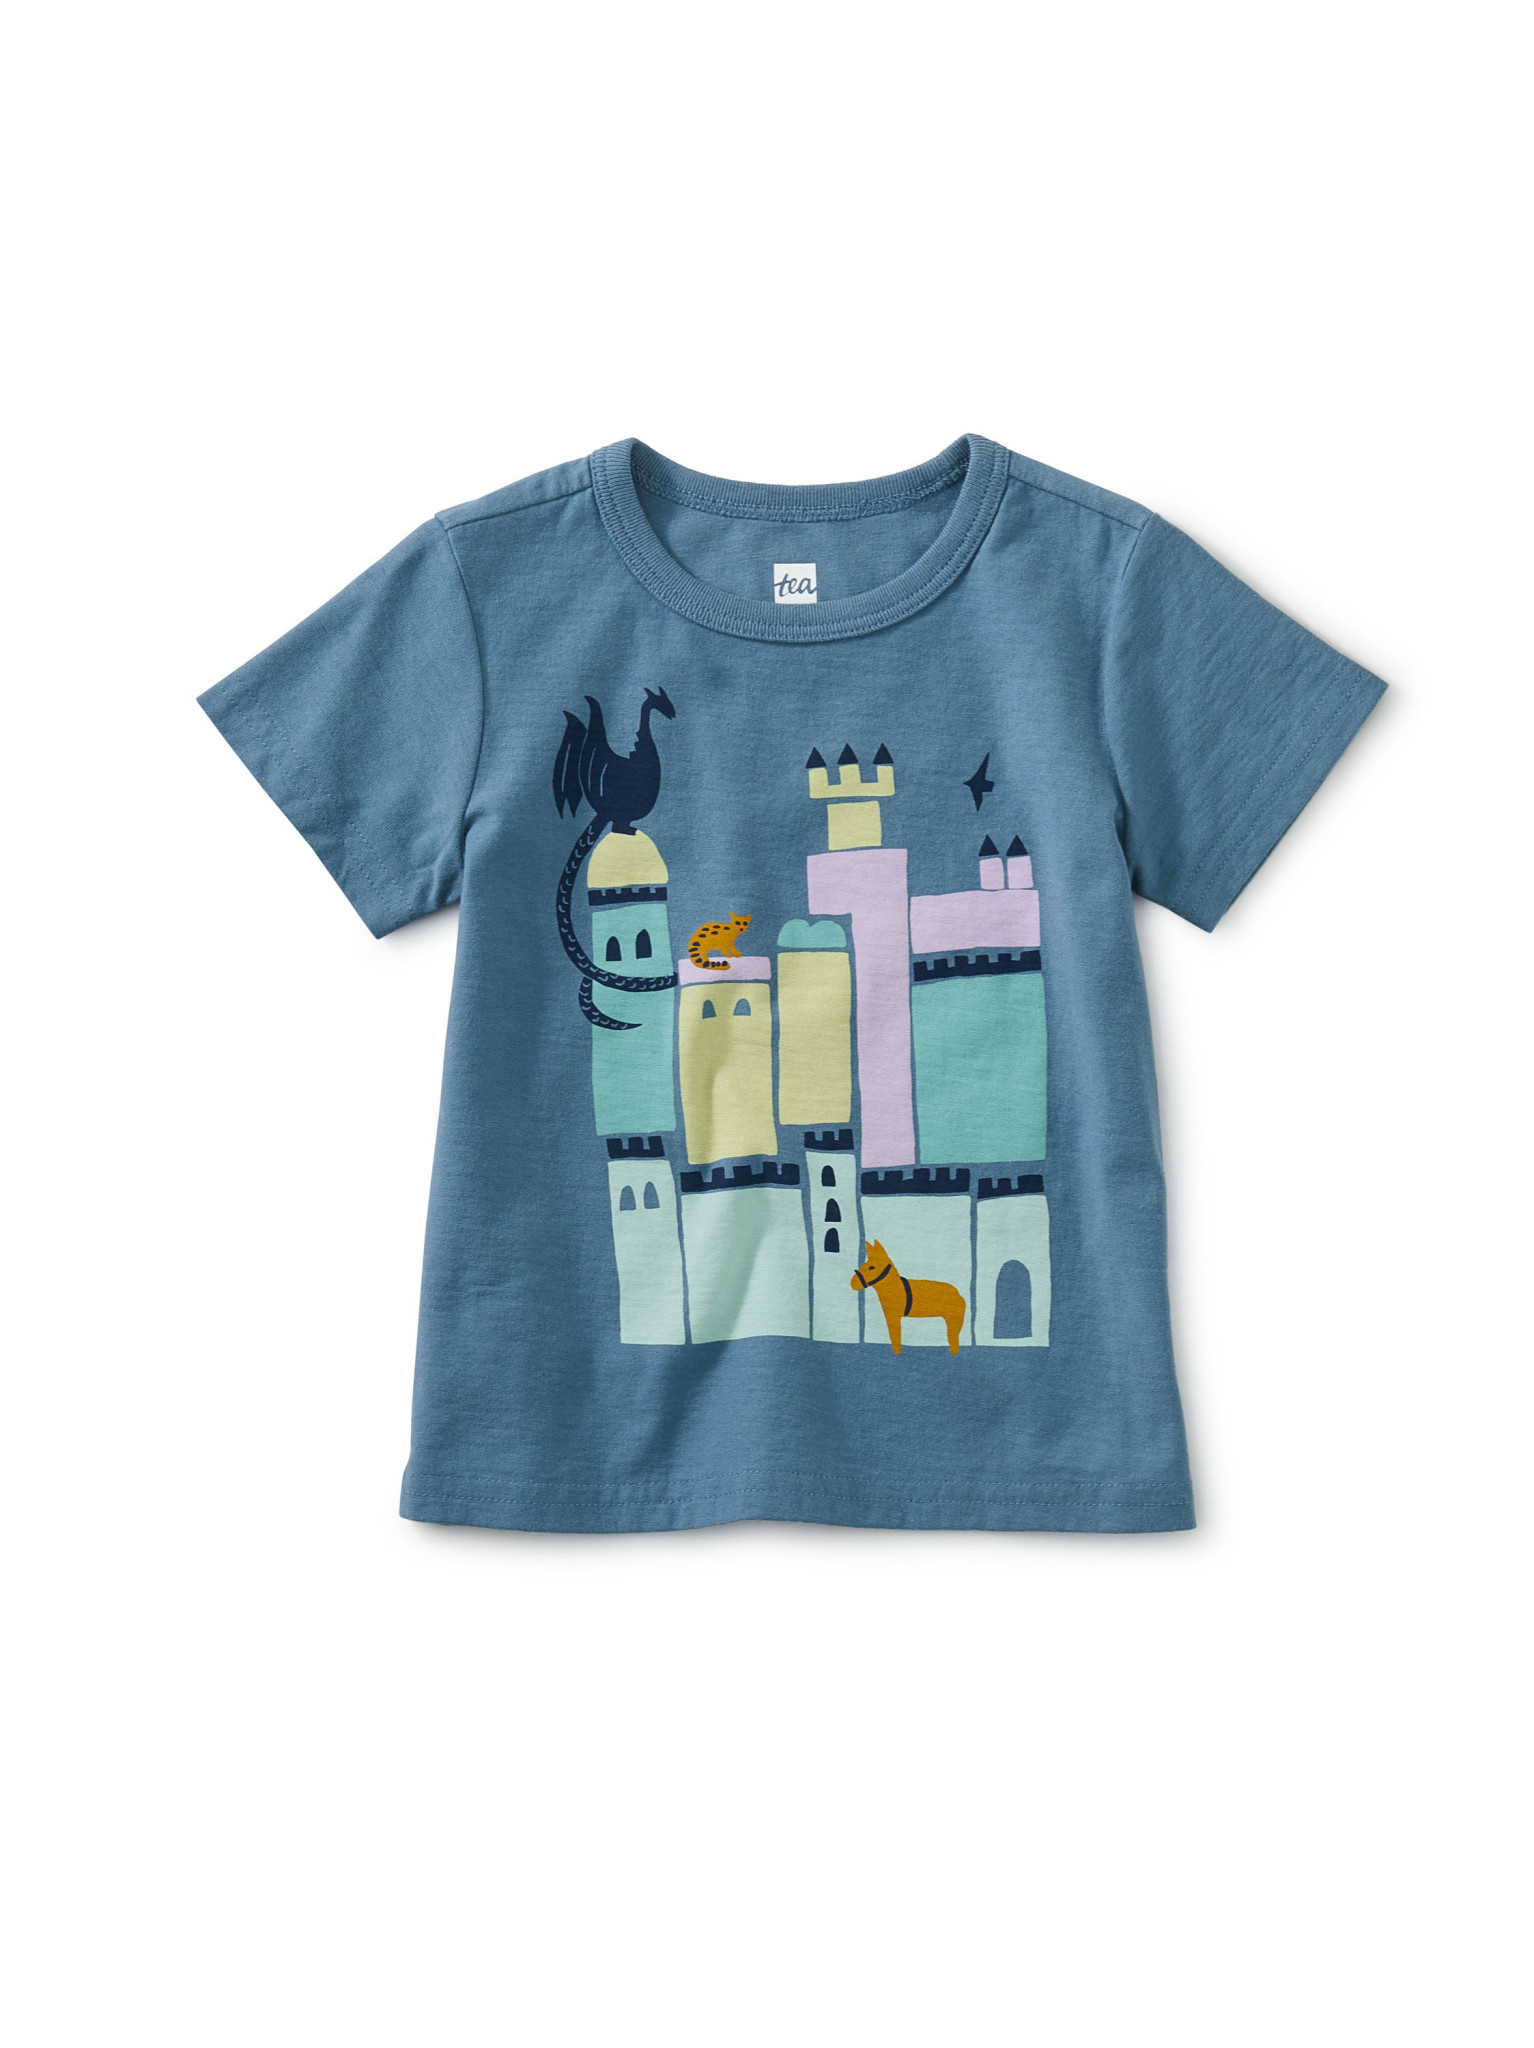 Tea Collection Portugal Palace Graphic Baby Tee- Aegean Blue